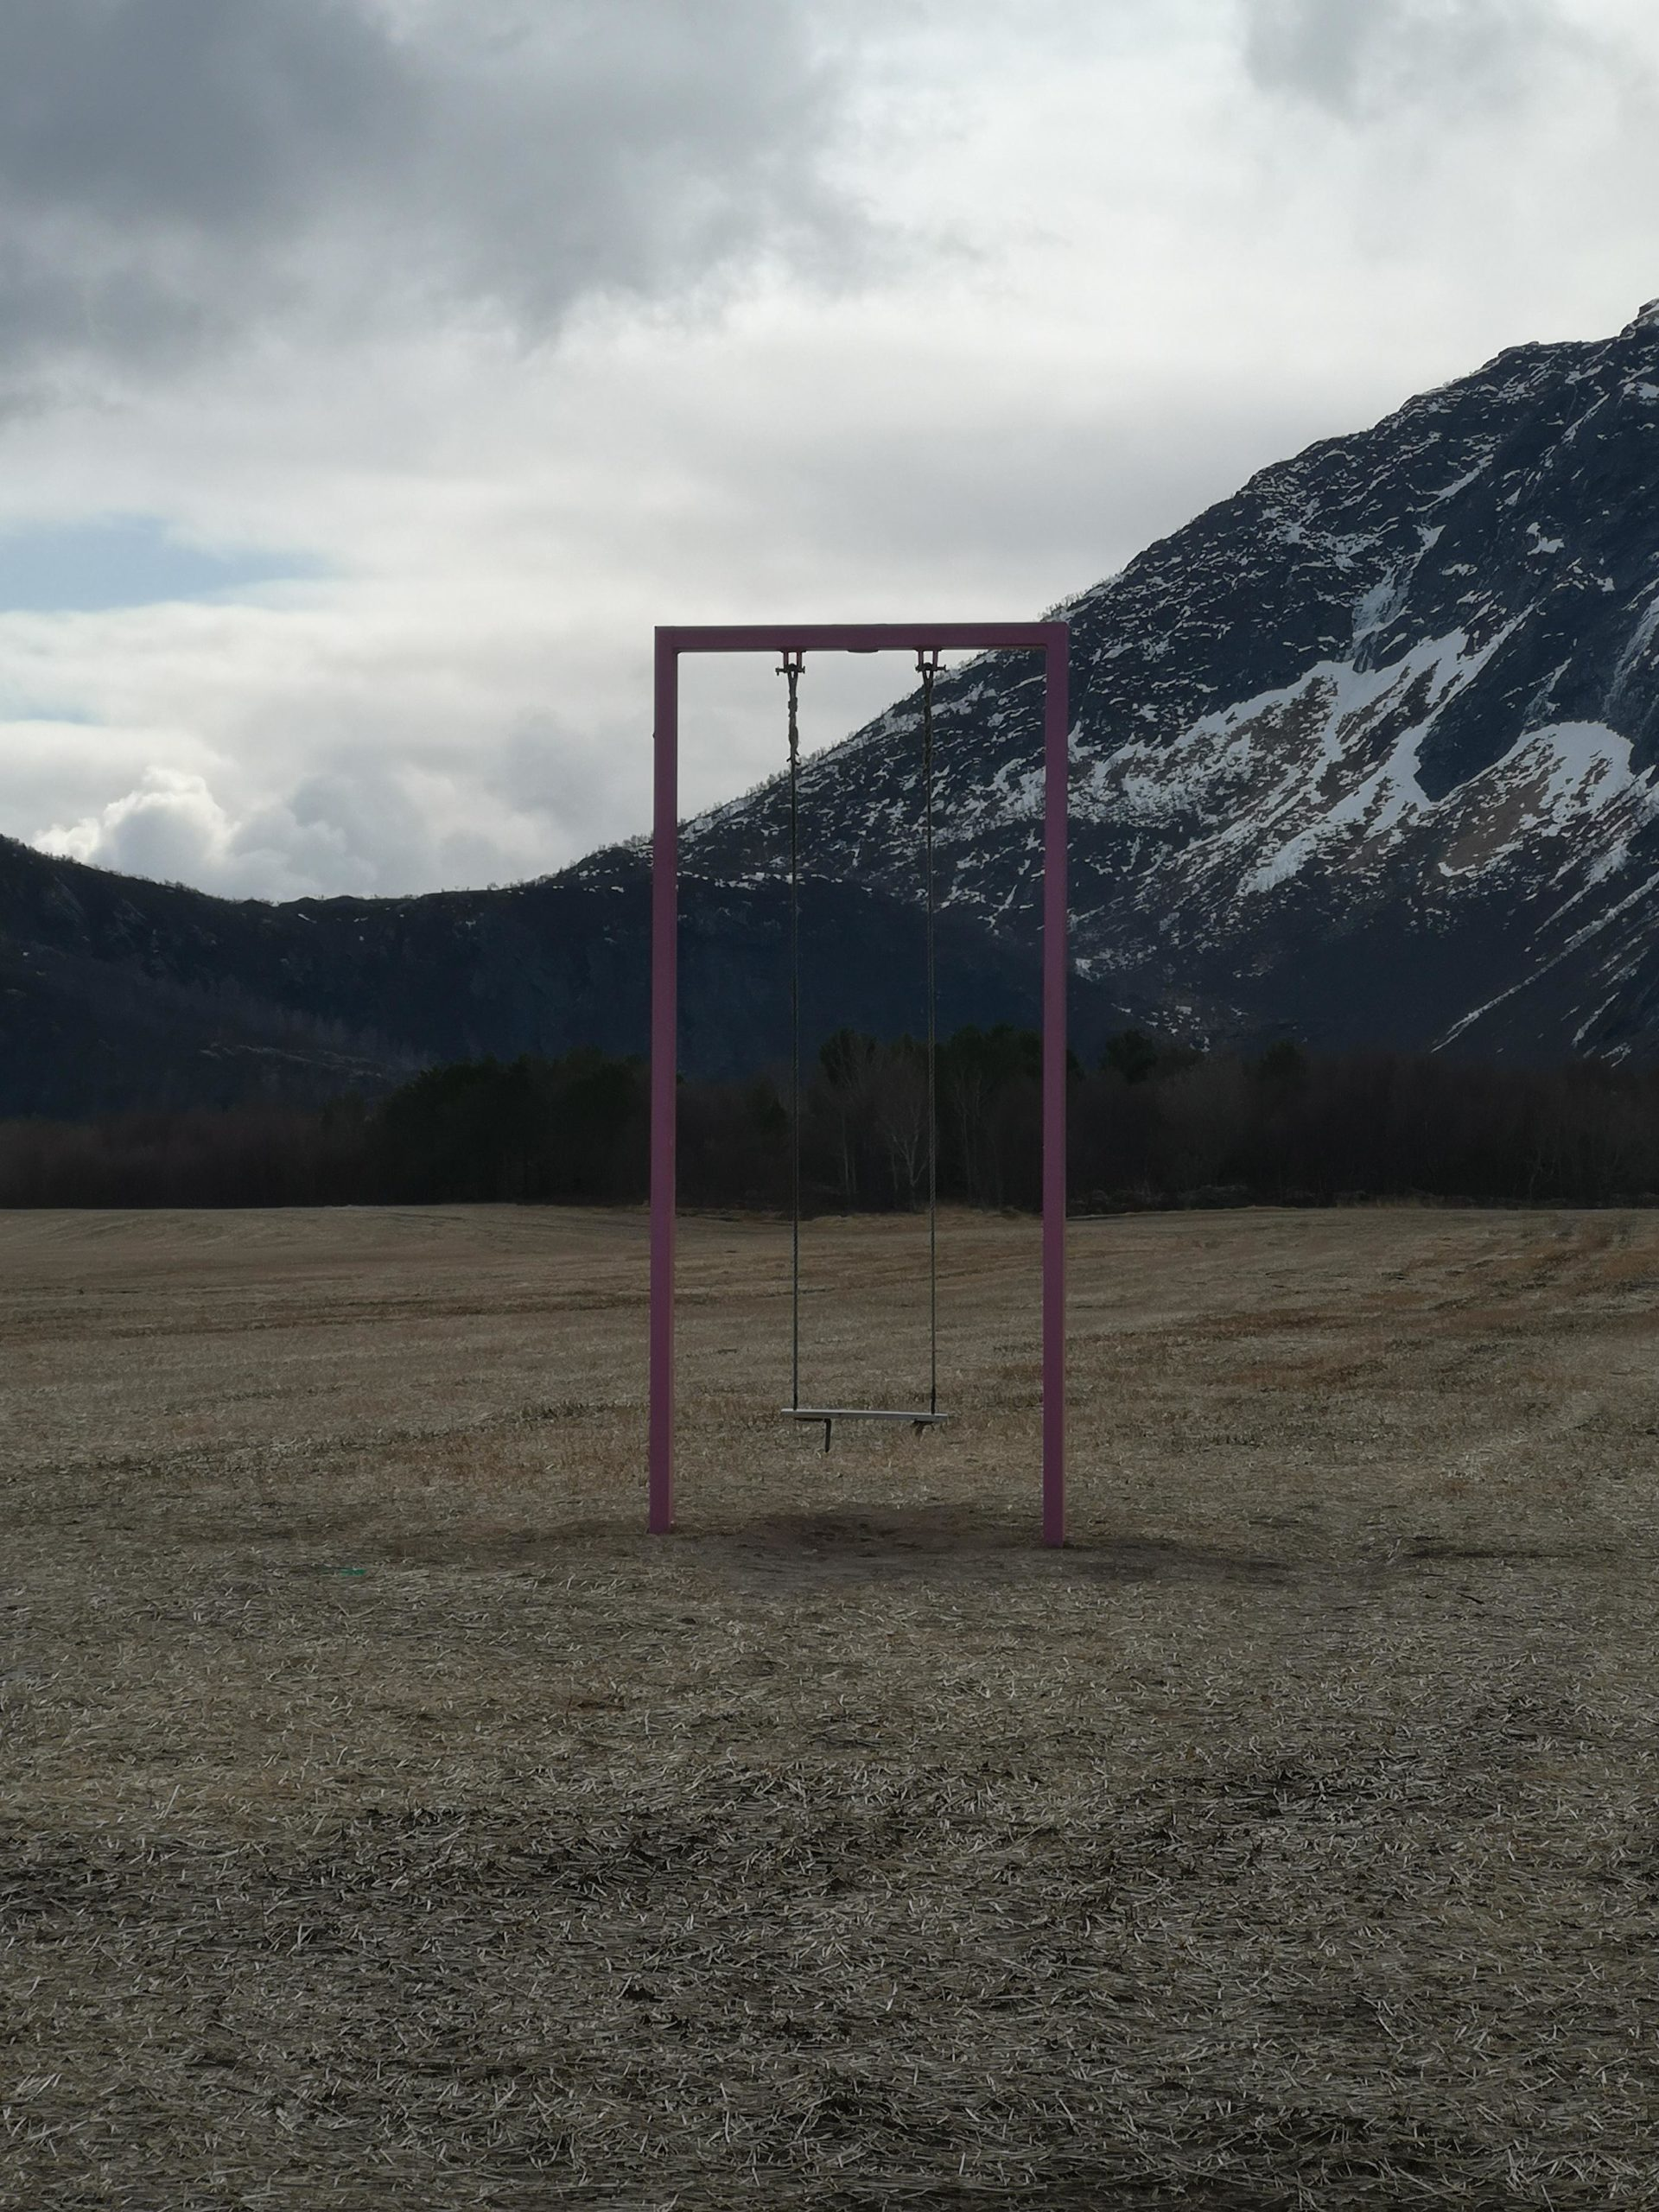 This random swing in the middle of a field